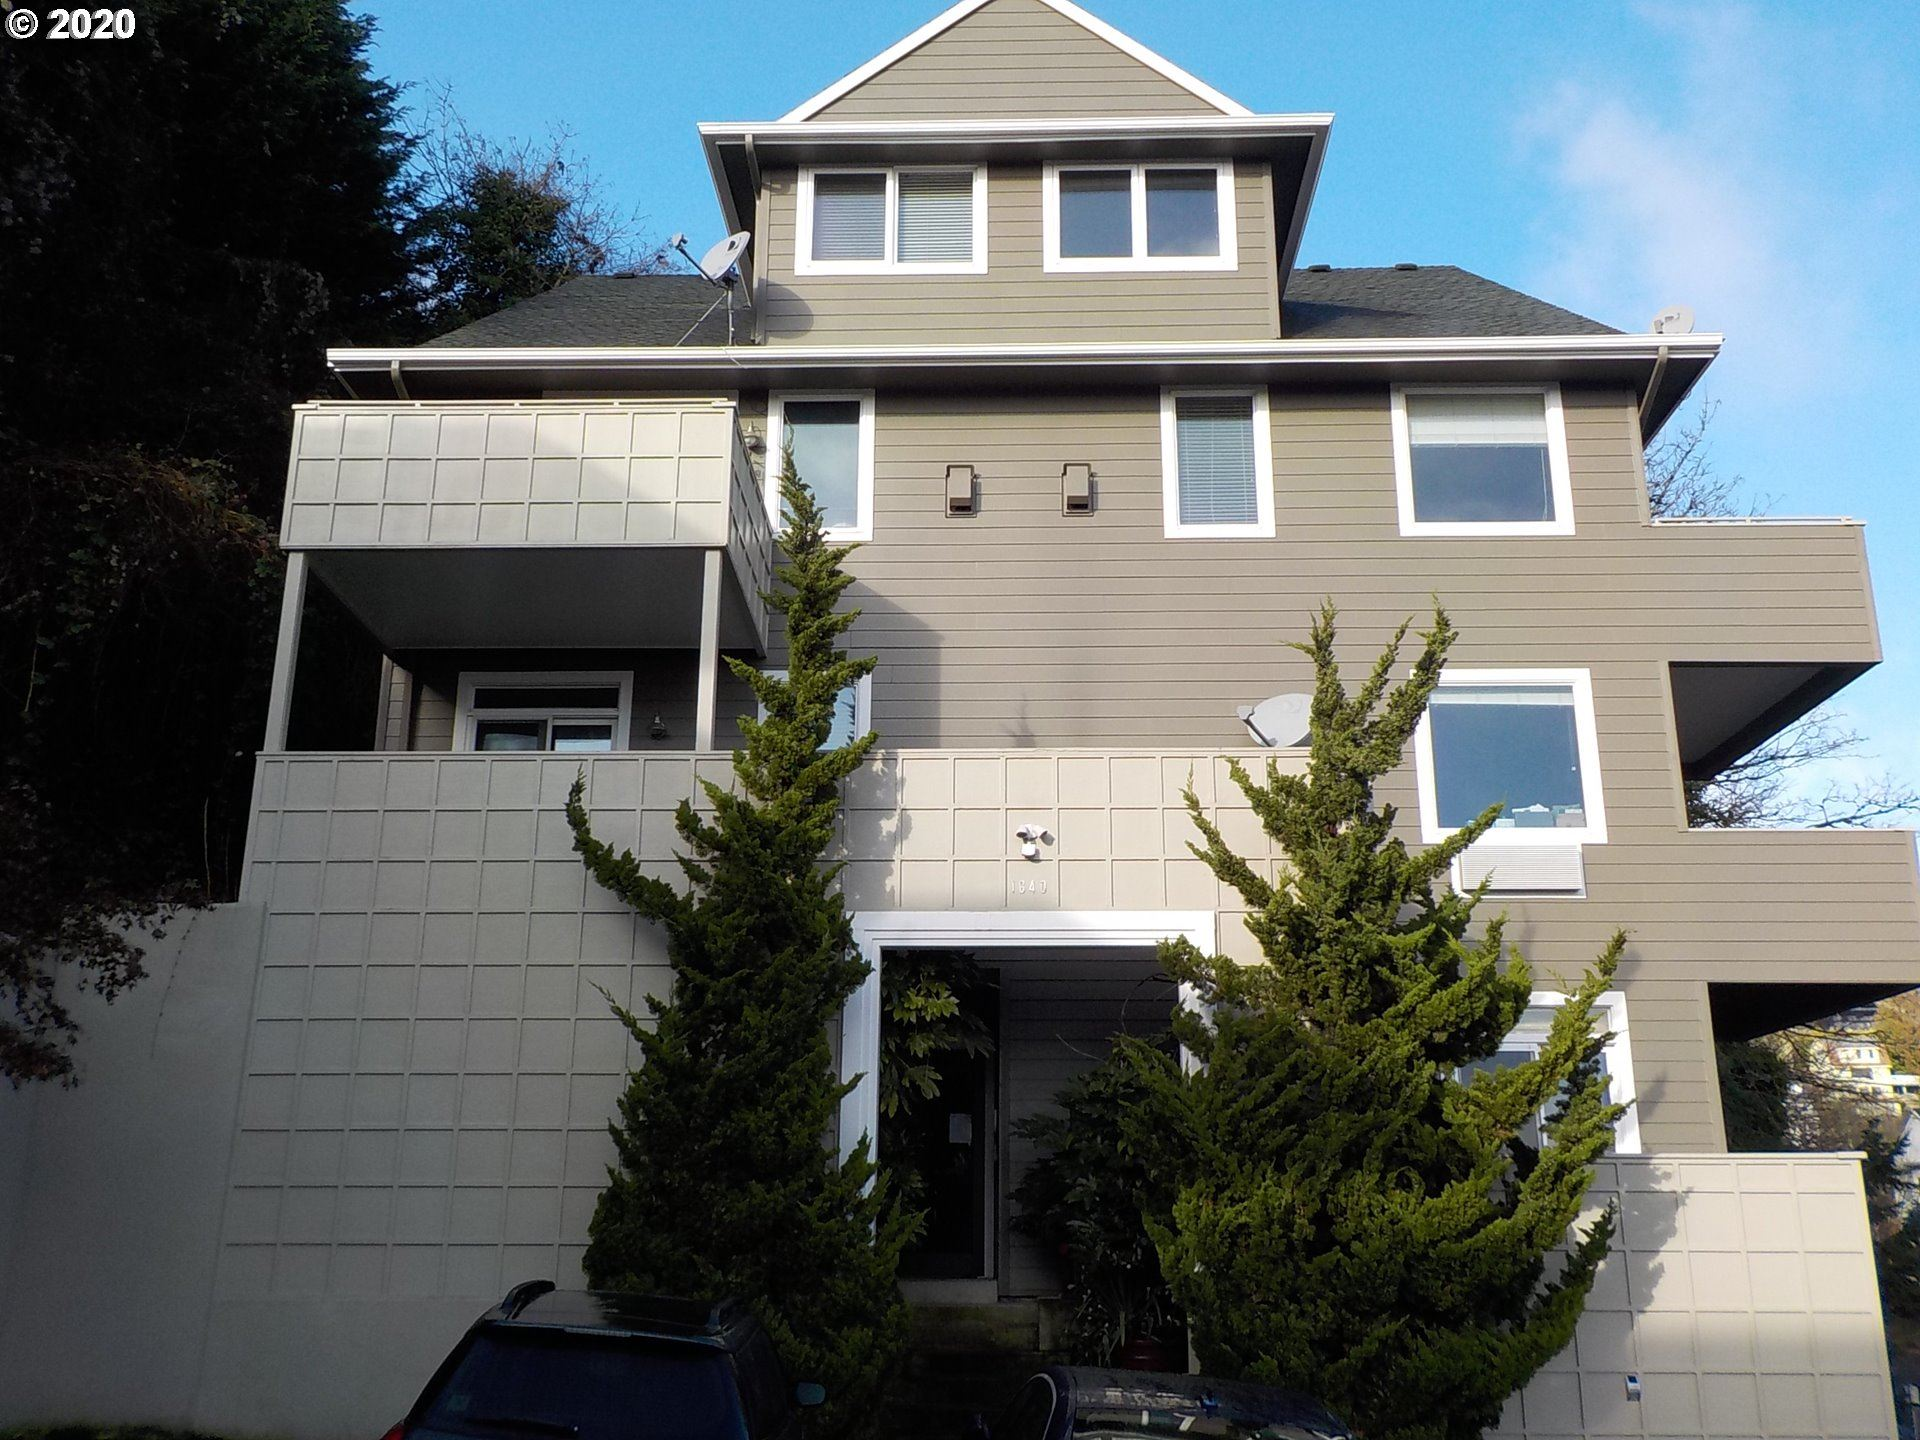 1640 SW MONTGOMERY ST #D, Portland, OR 97201 - #: 20698783